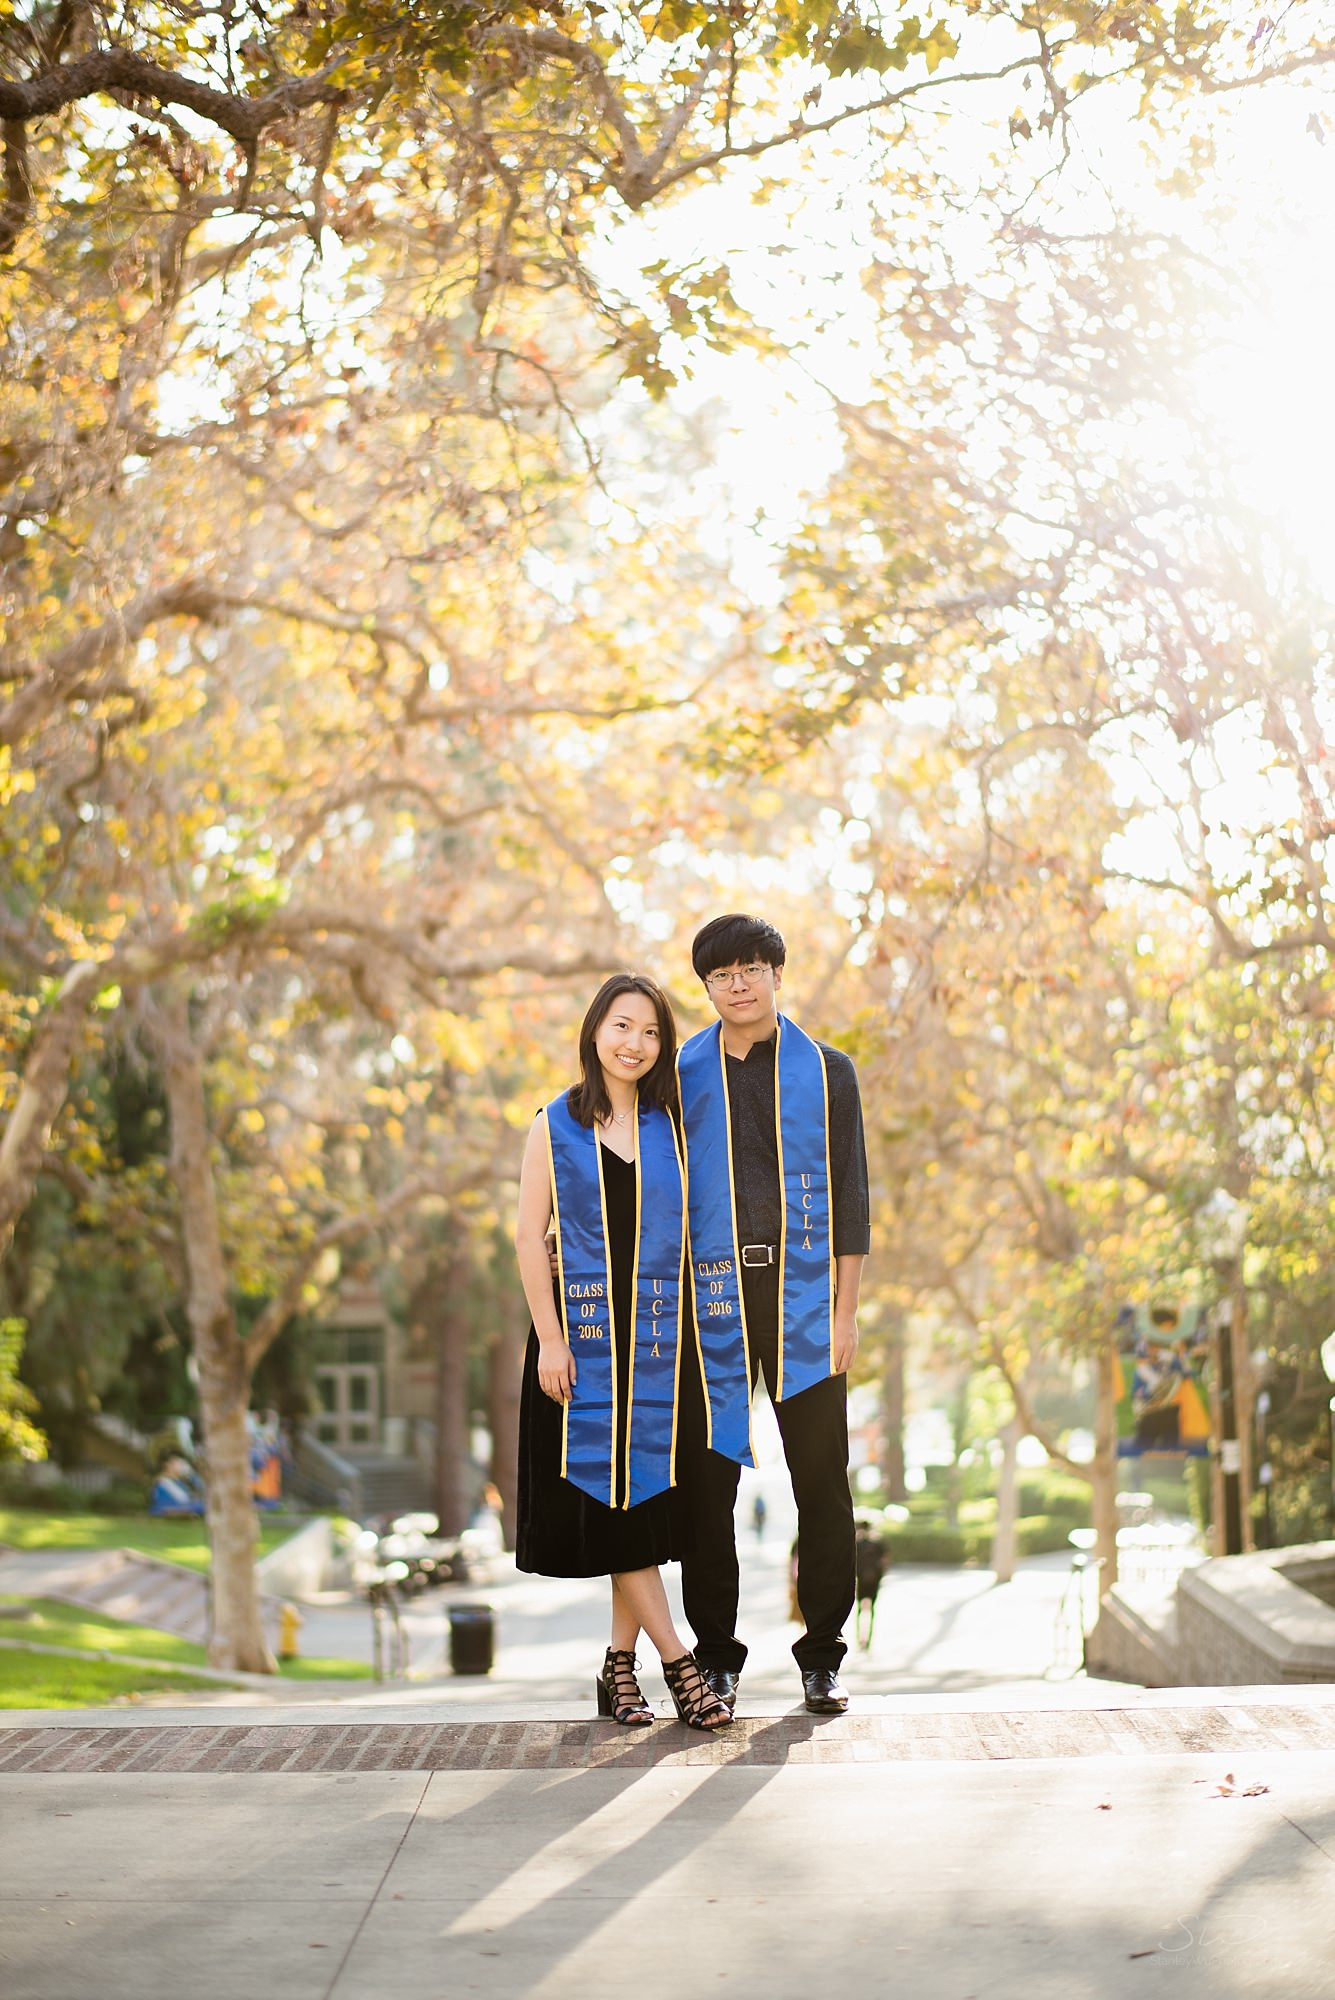 pretty graduation senior portrait of a couple standing on bruinwalk with an epic sunset making trees glow orange at ucla in los angeles